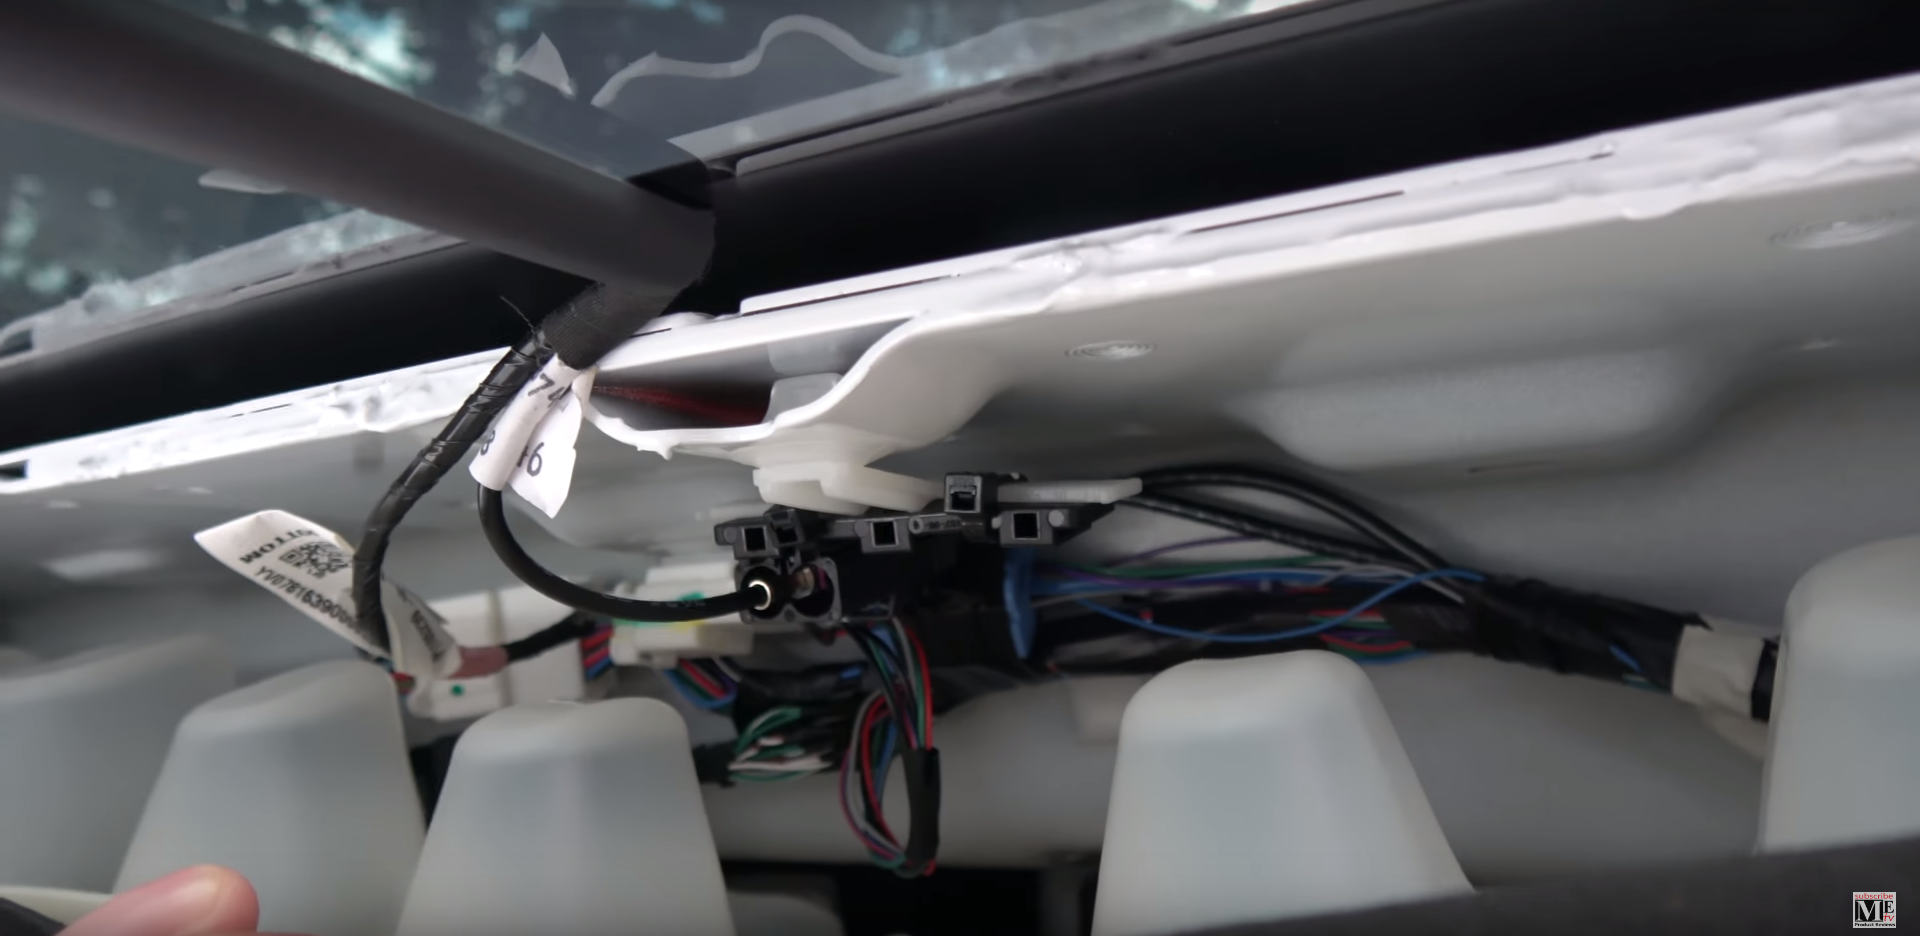 Tesla wiring harness model x